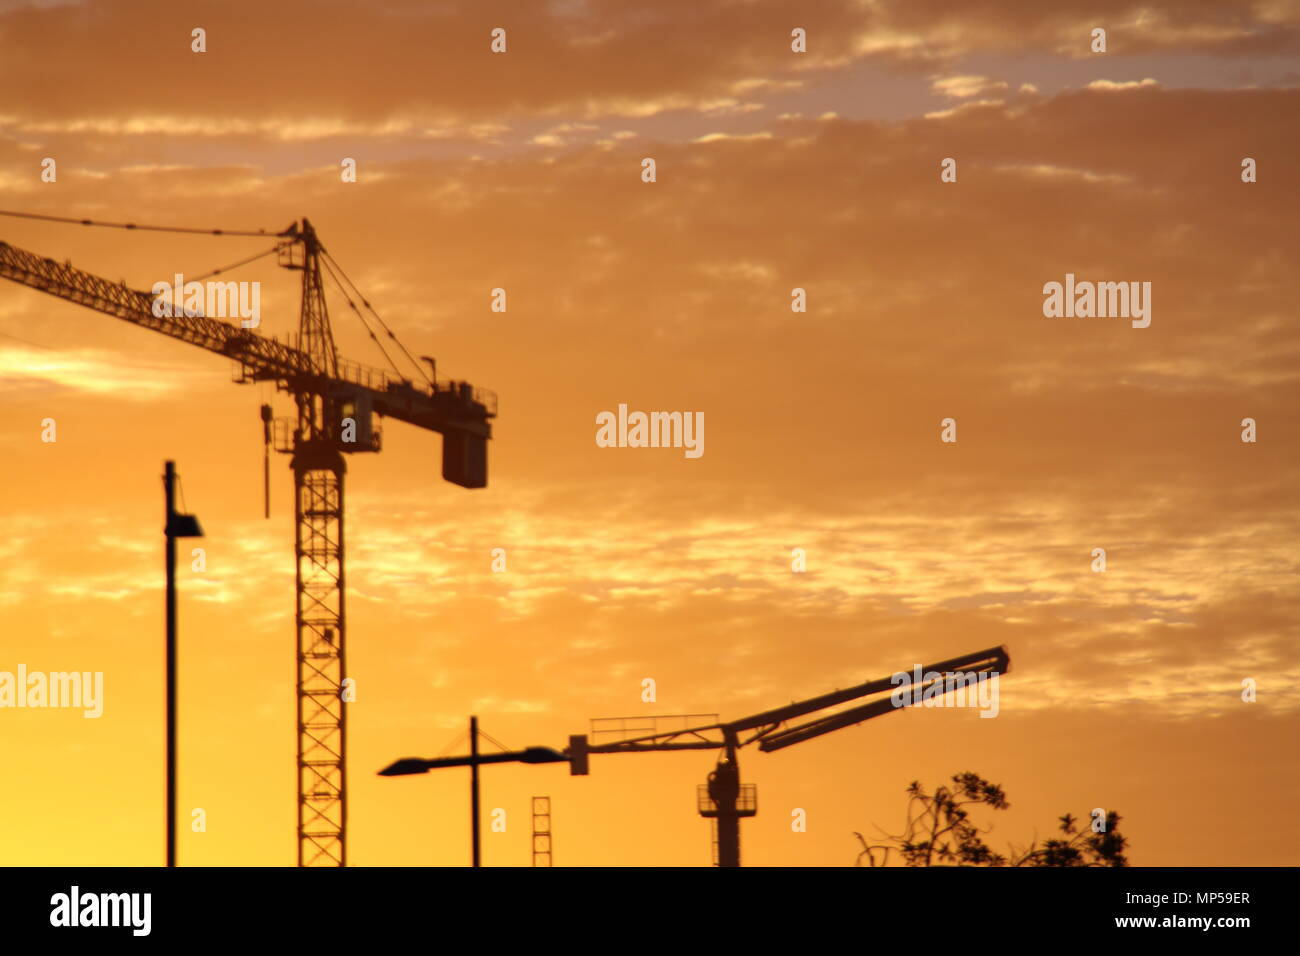 Construction Cranes at Sunset, Gold Coast, Australia - Stock Image